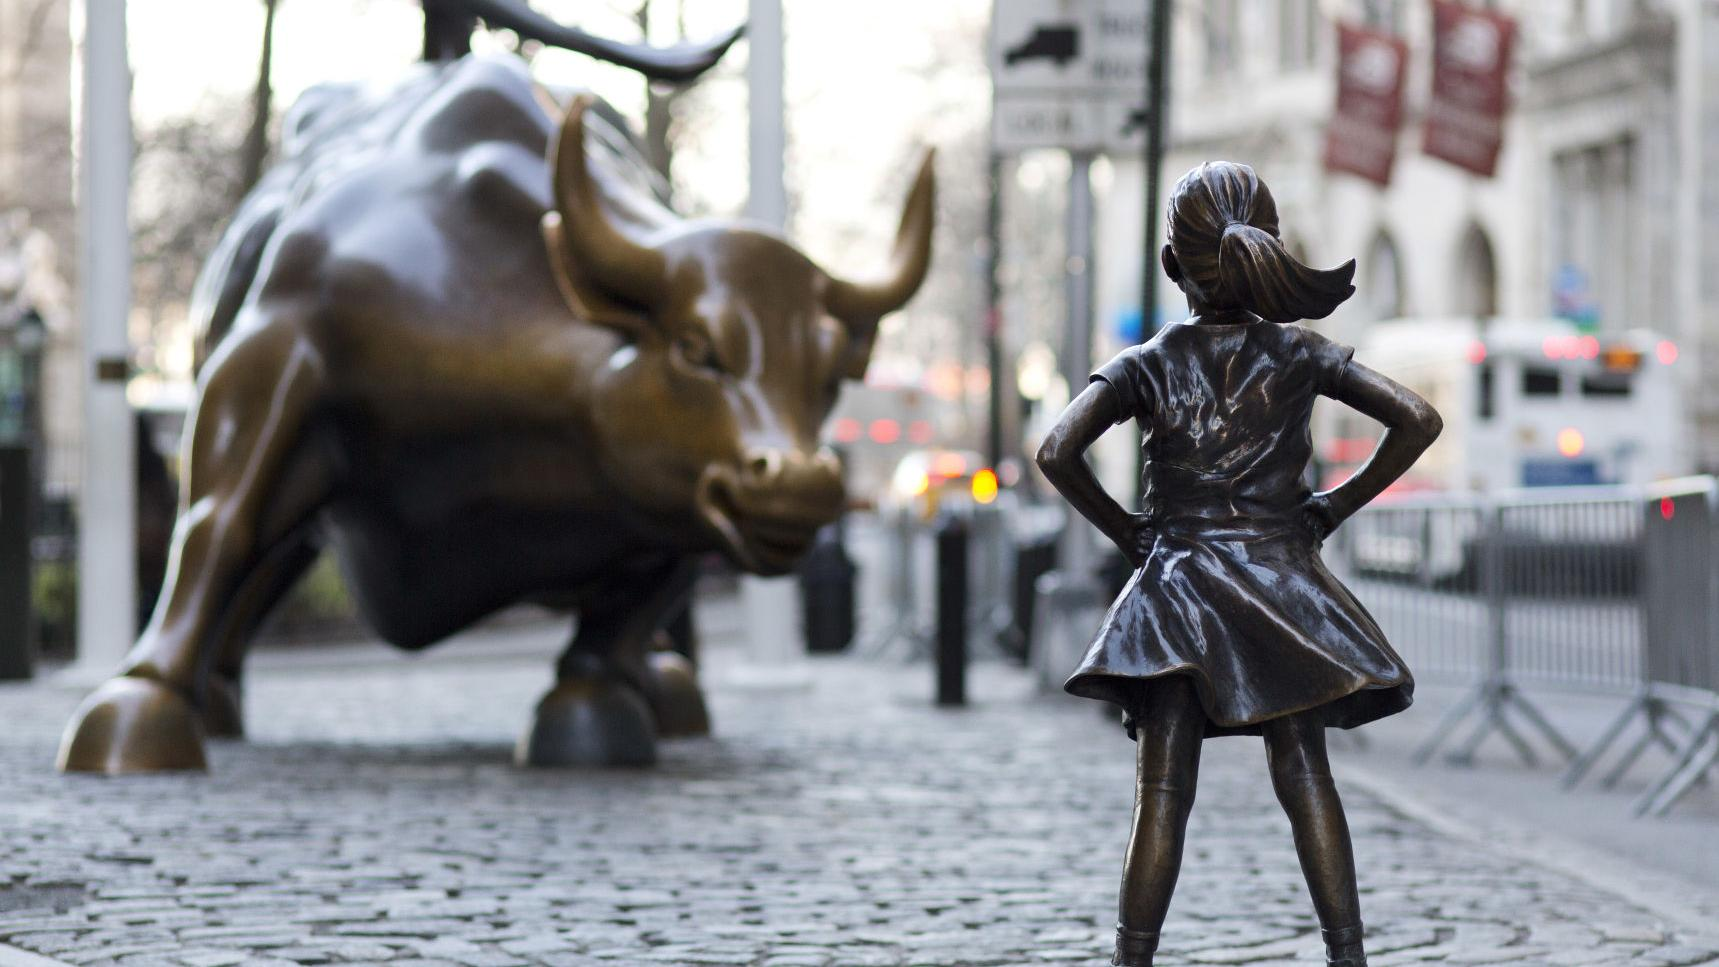 'Fearless Girl' statue to stay on Wall Street until 2018